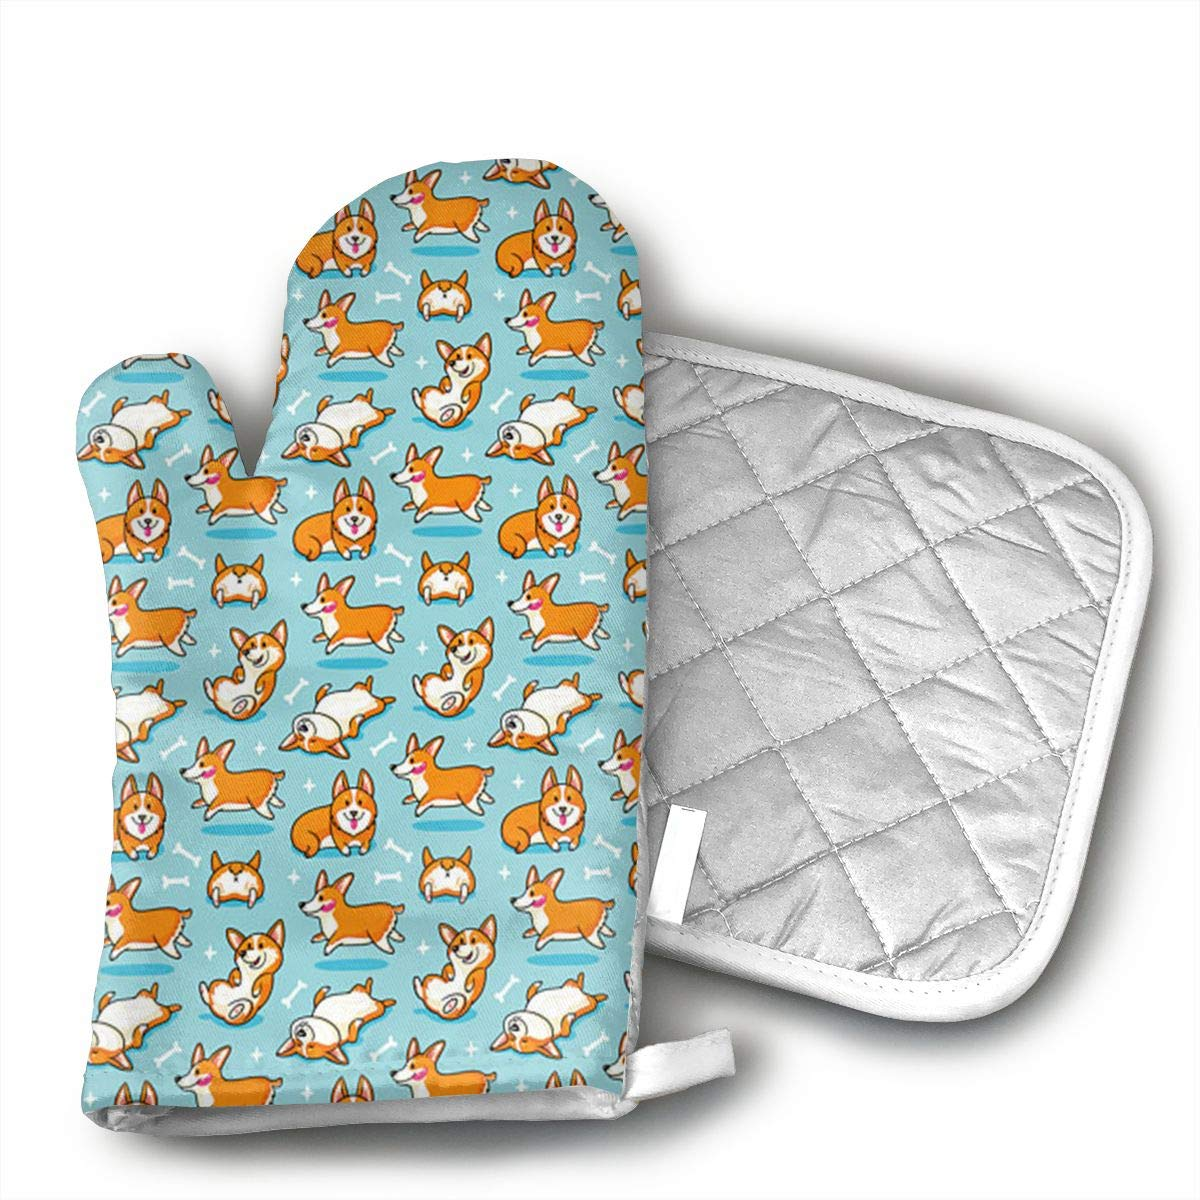 Cute Corgi Oven Mitts and Pot Holders Set with Polyester Cotton Non-Slip Grip, Heat Resistant, Oven Gloves for BBQ Cooking Baking, Grilling